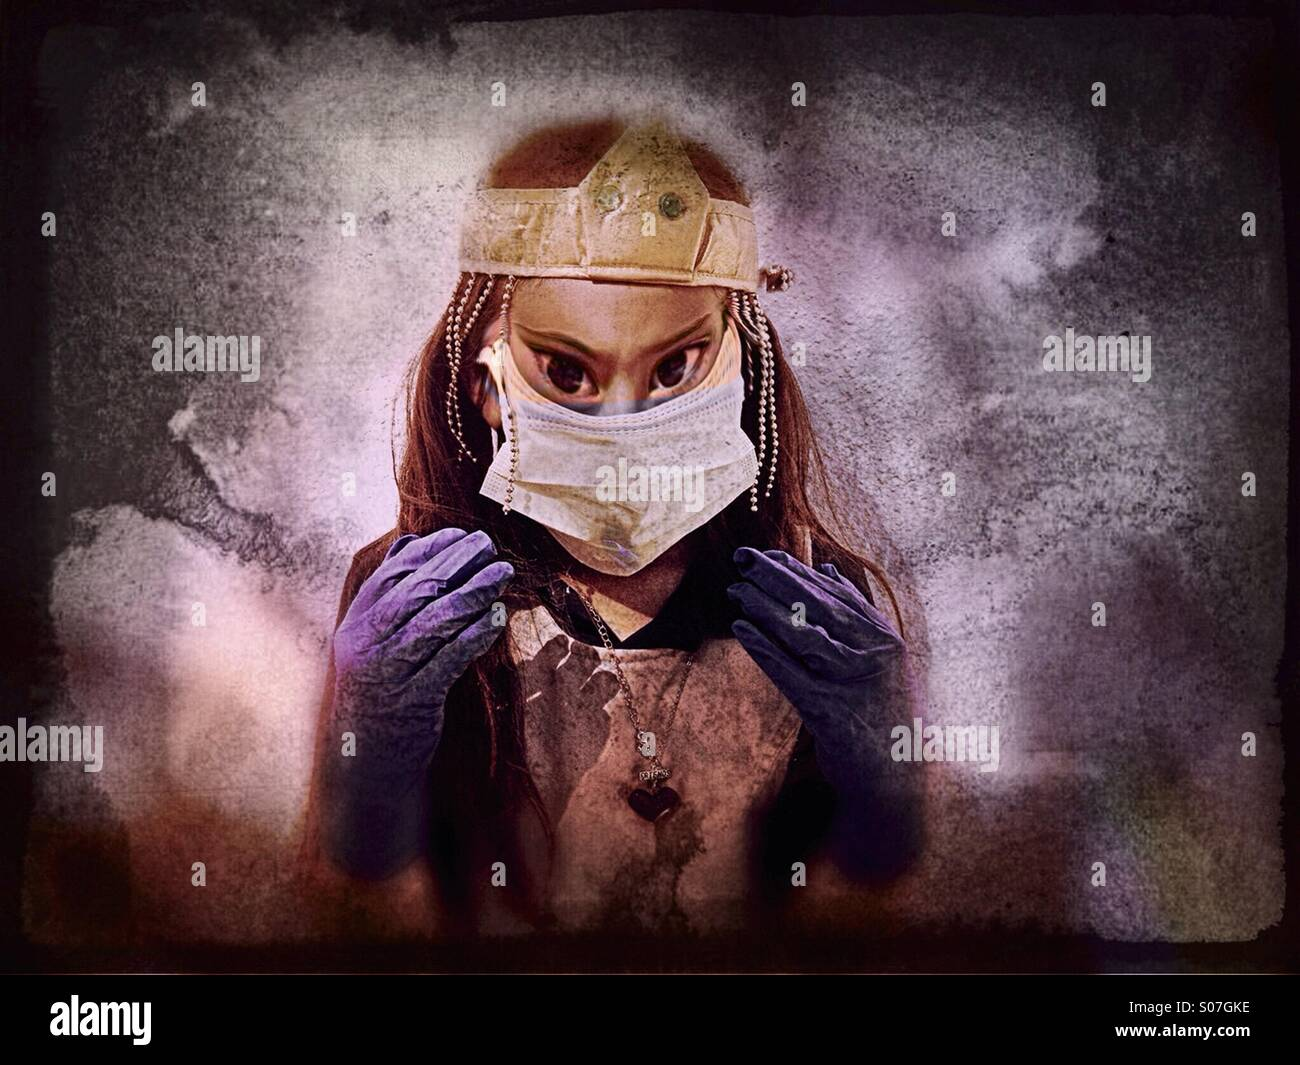 A seven-year-old girl playing dress-up with a surgical mask, gloves and crown with demonic eyes. - Stock Image